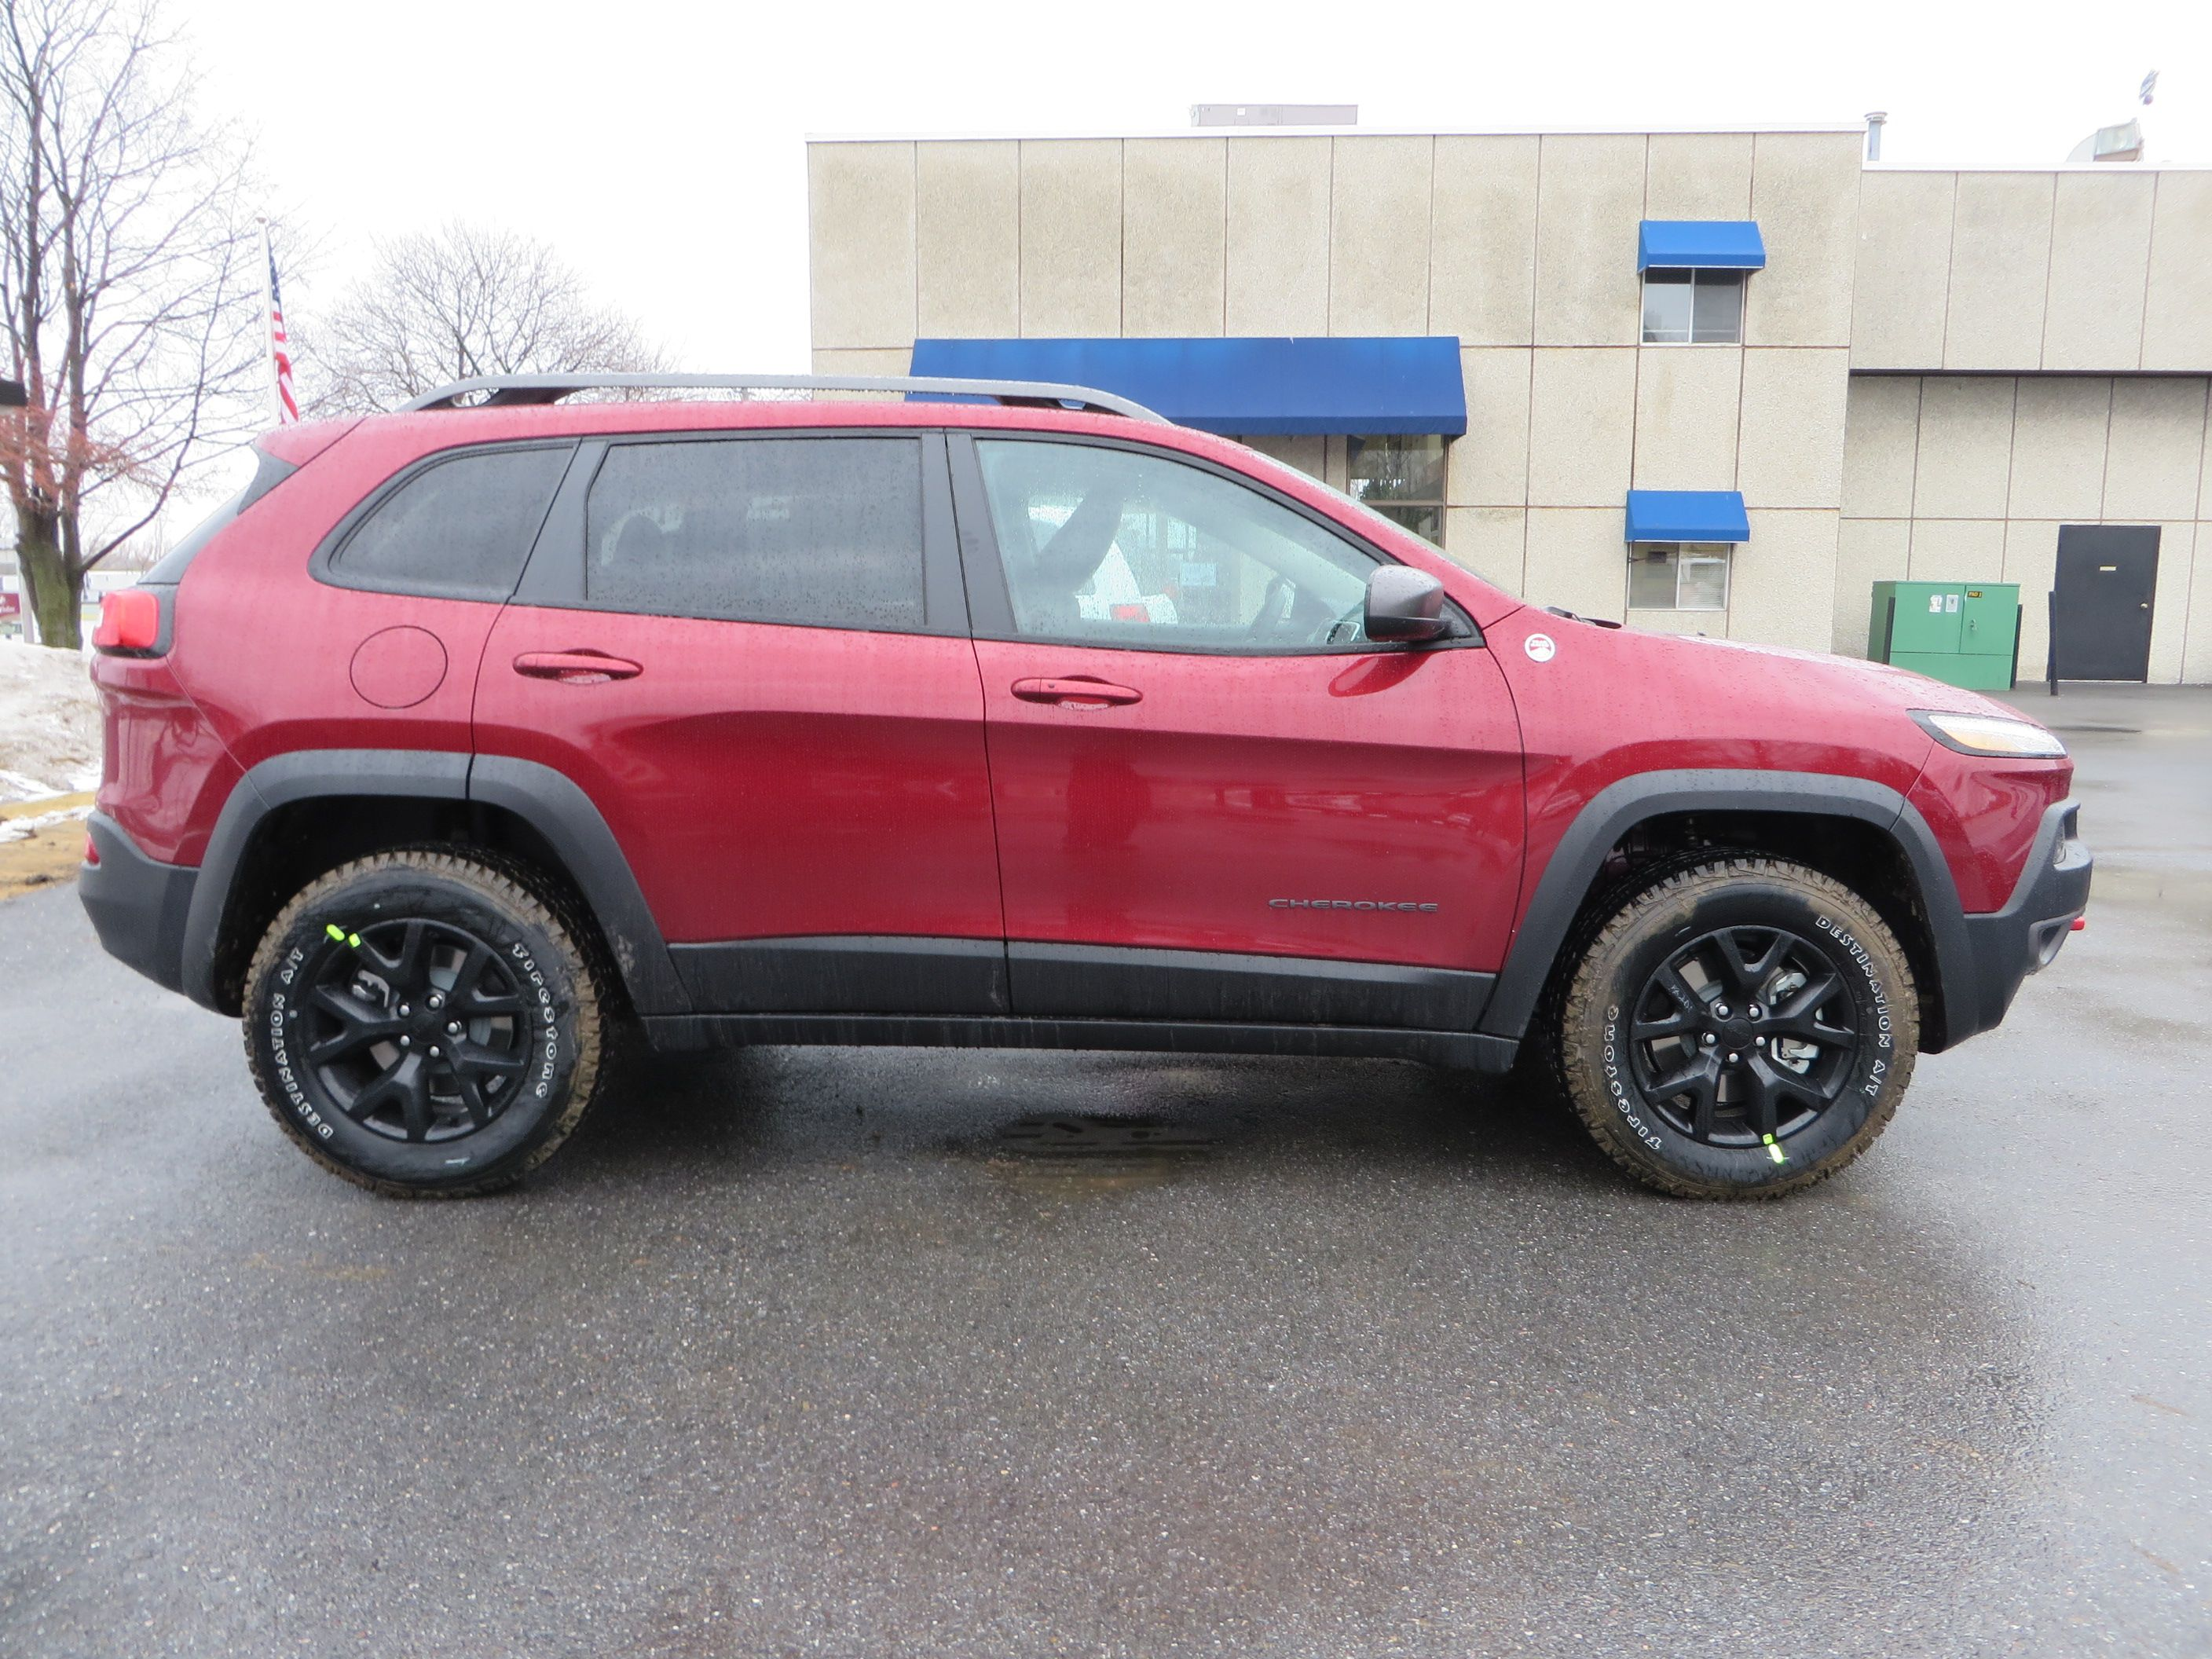 2015 Jeep Cherokee Trailhawk In Cherry Red With Black Wheels 1999 Forum